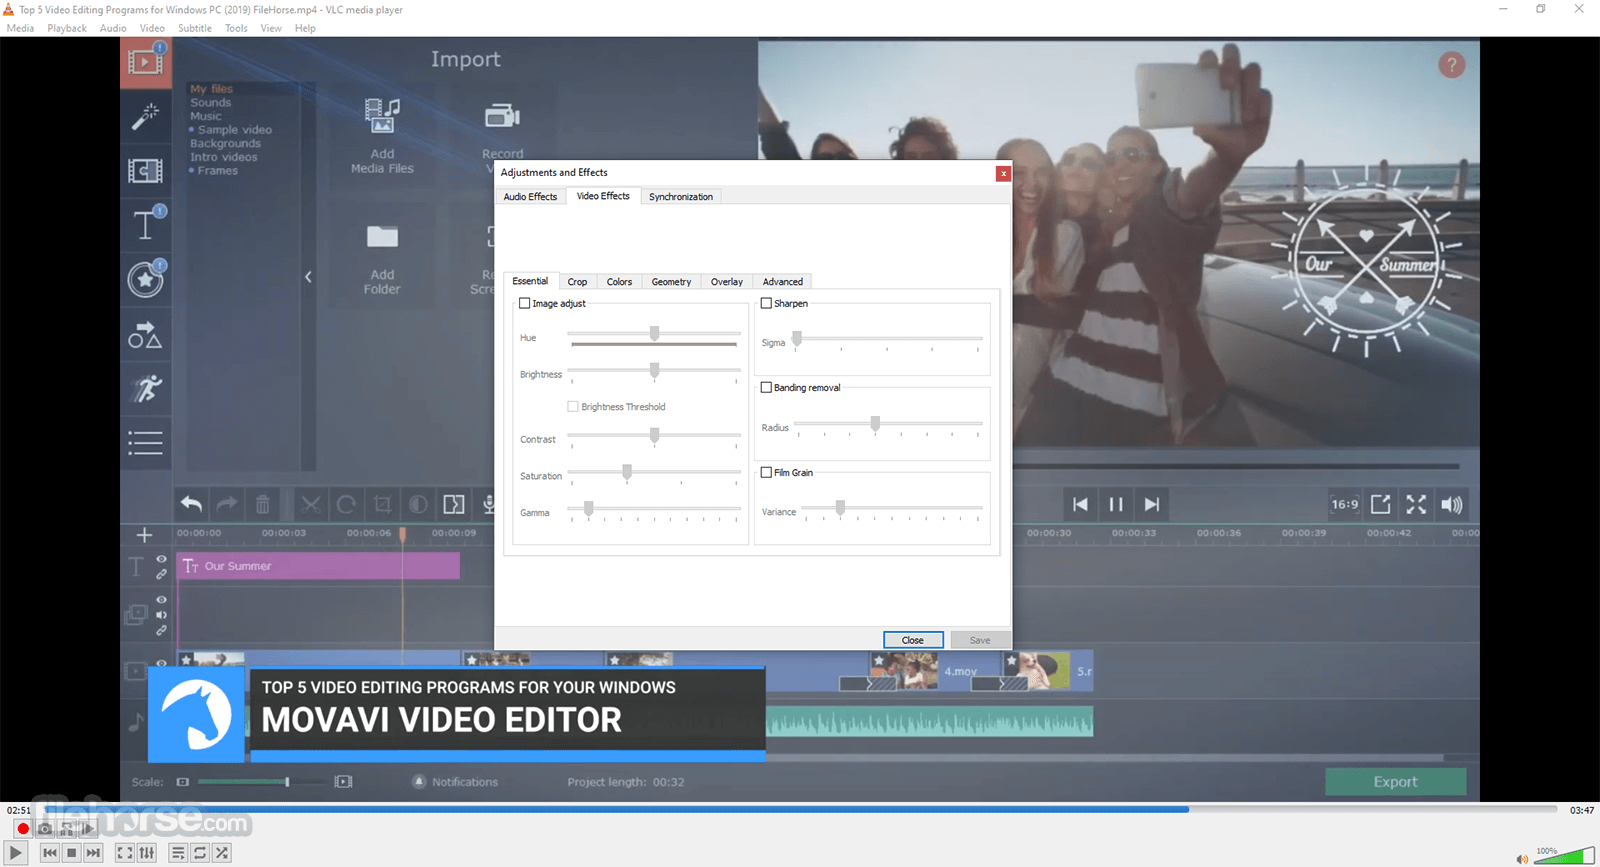 VLC Media Player 2.1.3 (32-bit) Screenshot 4